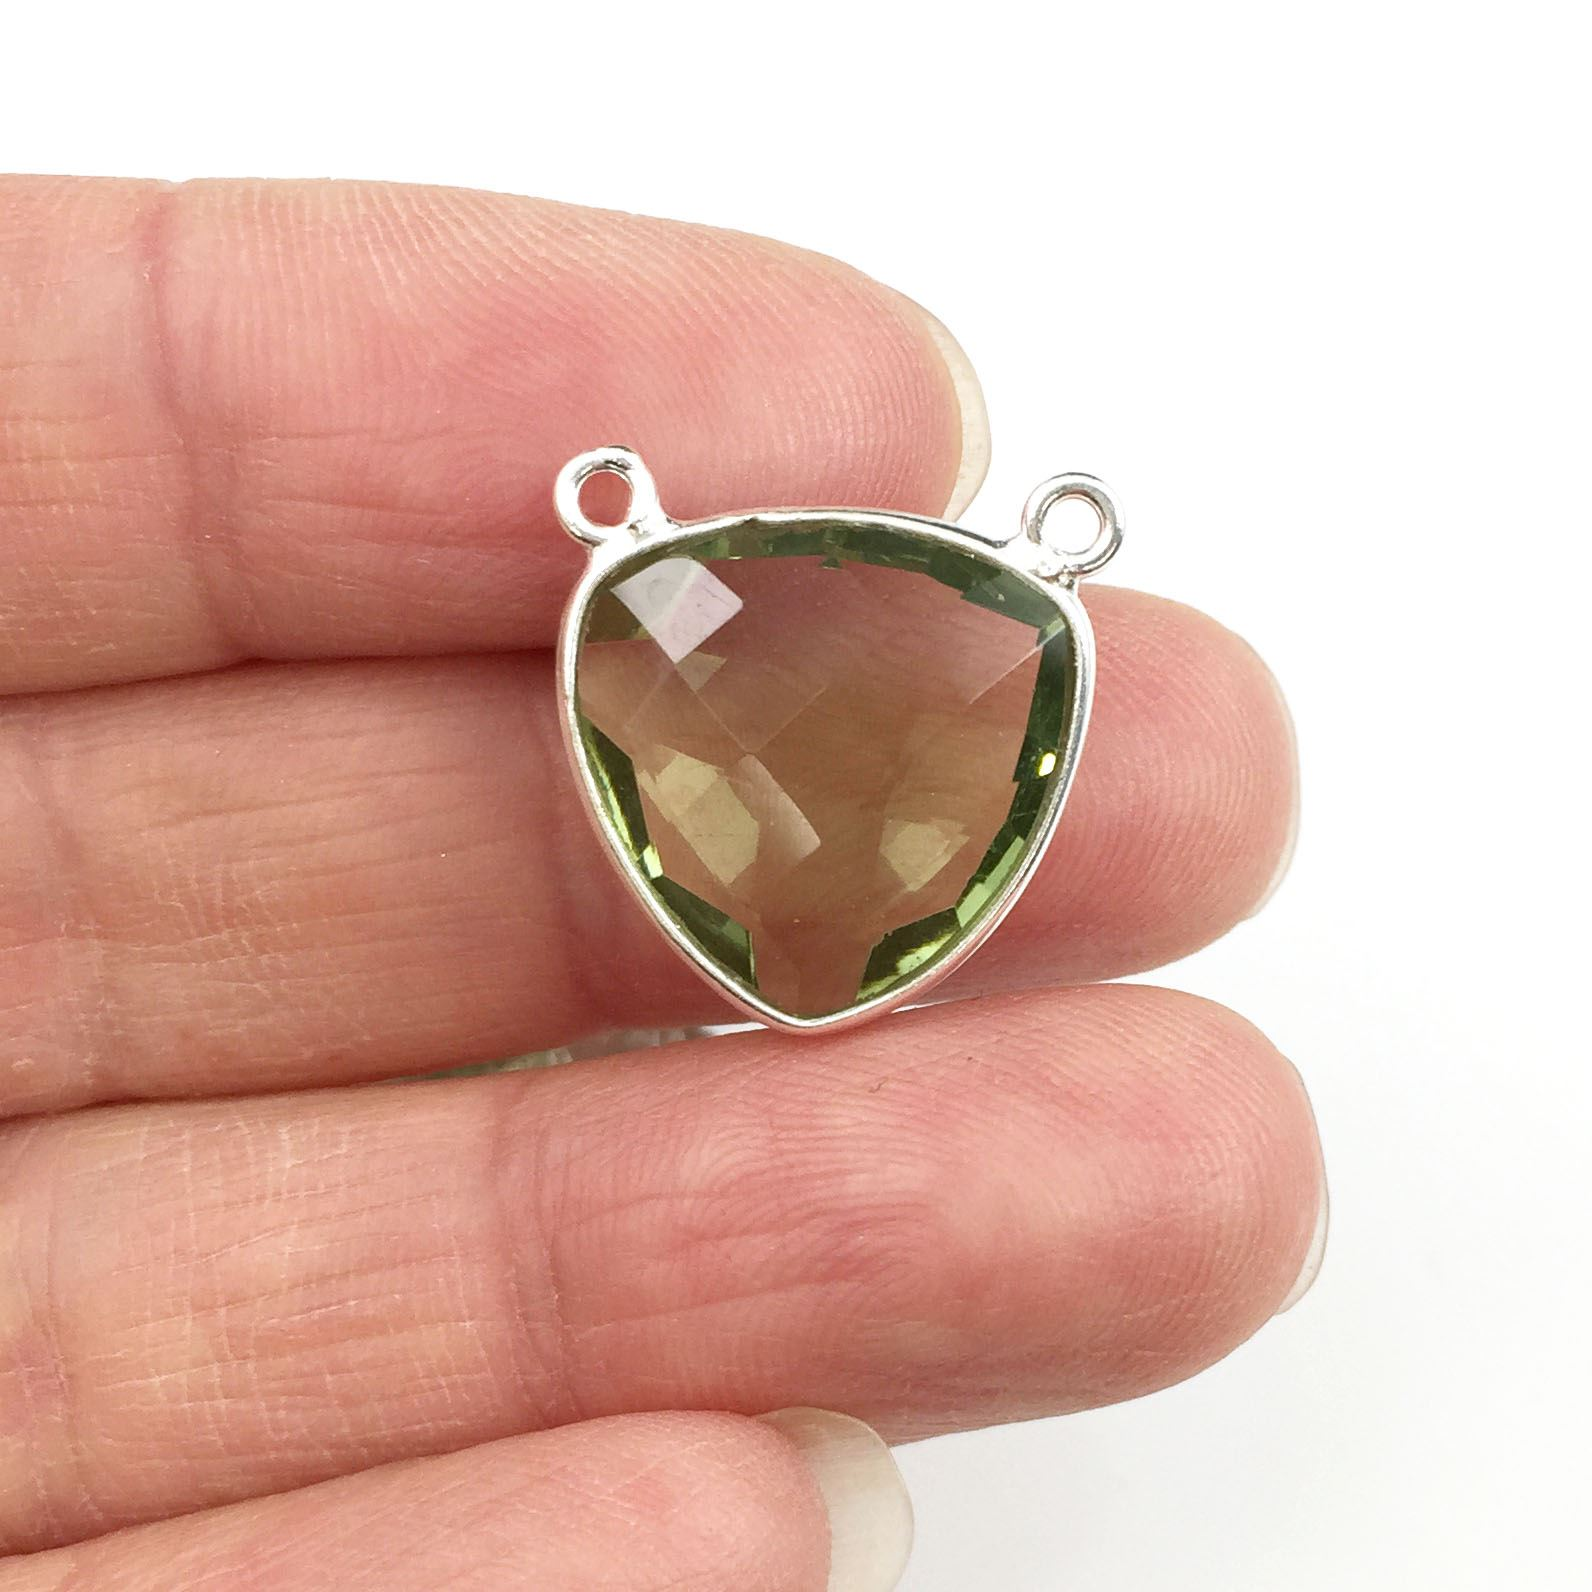 Bezel Gemstone Connector Pendant - Green Amethyst Quartz - Sterling Silver - Small Trillion Shaped Faceted - 15mm - 1 piece